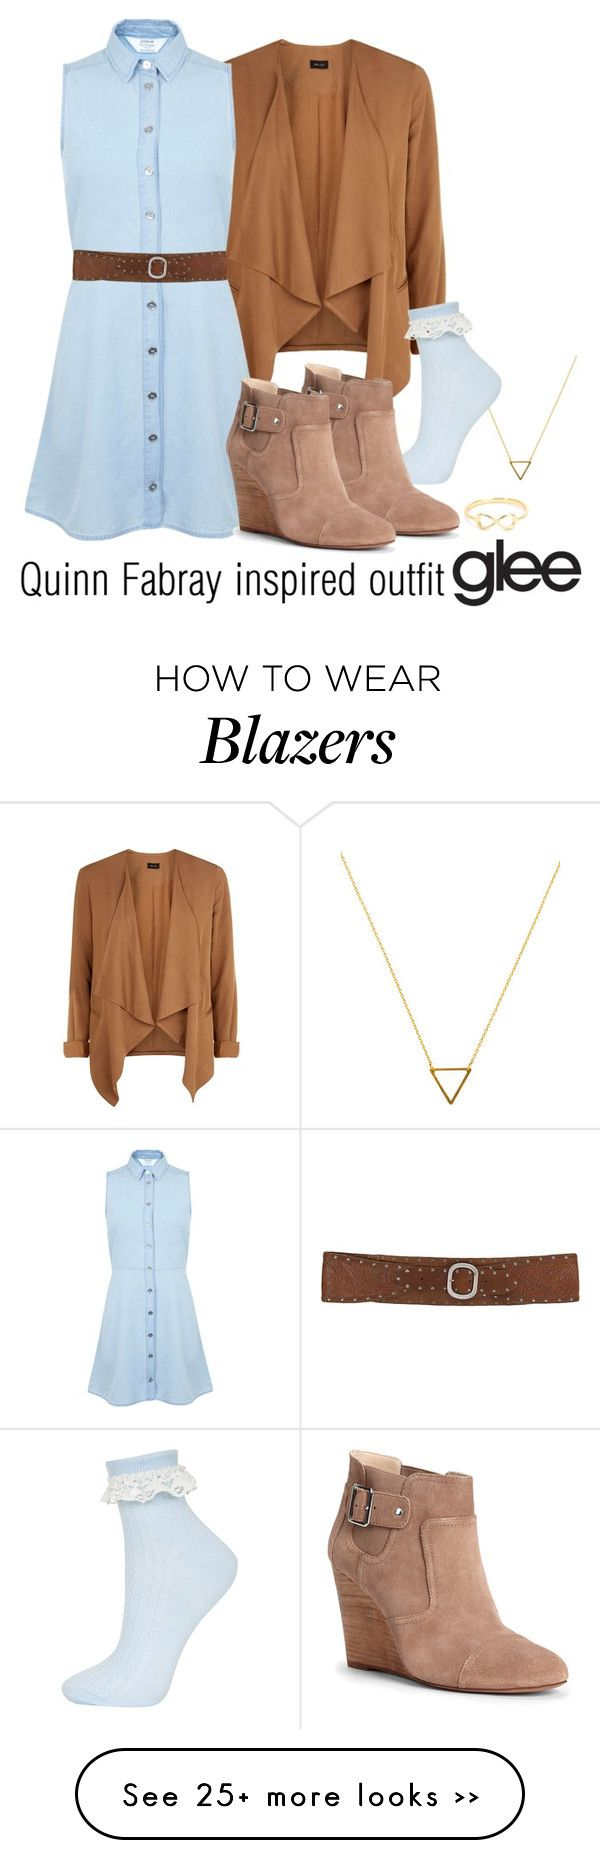 """Quinn Fabray inspired outfit/GLEE"" by tvdsarahmichele on Polyvore"